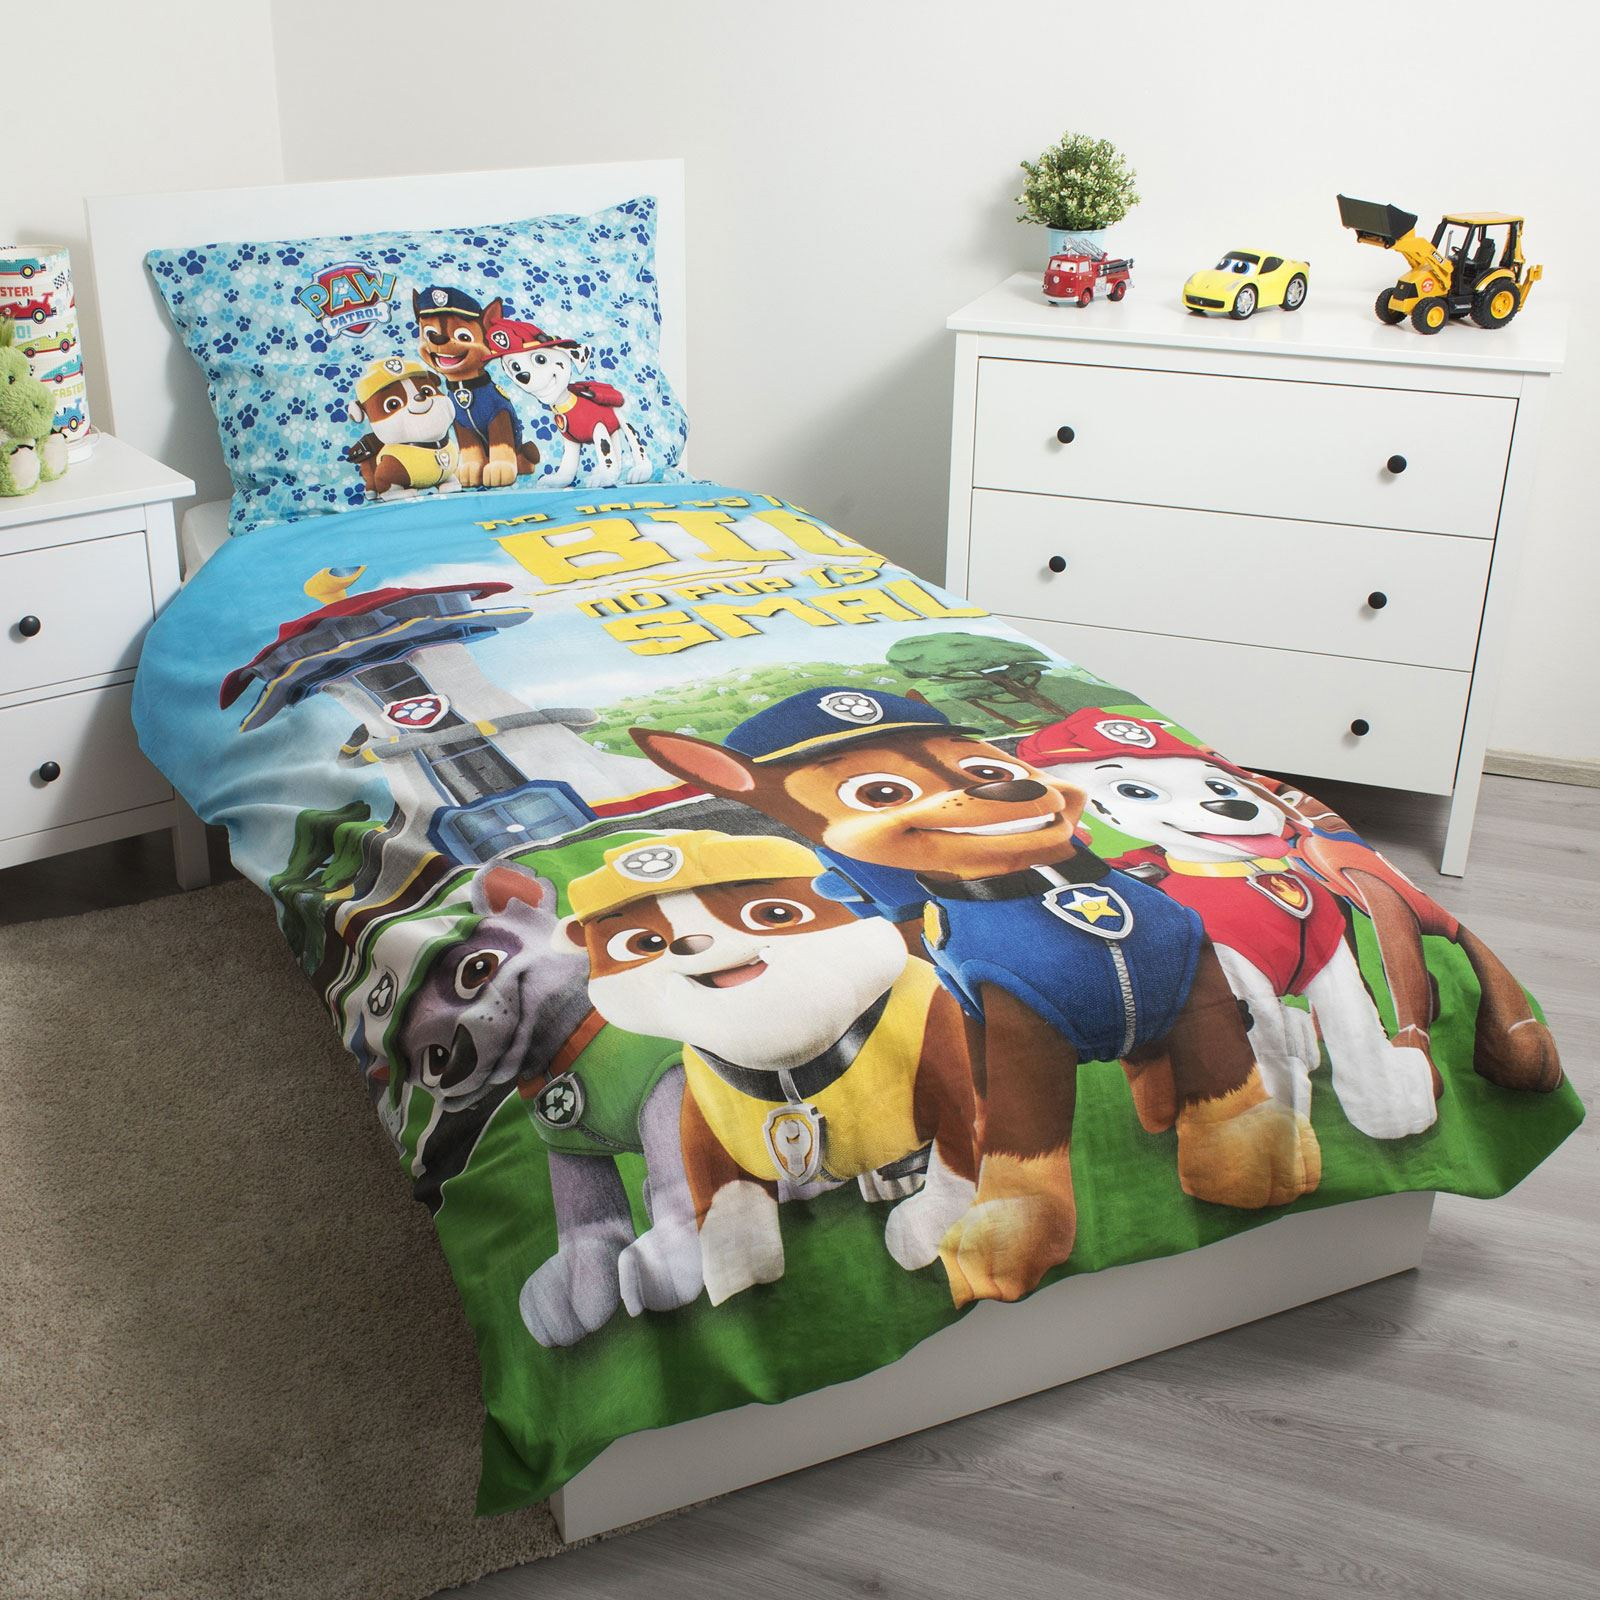 PAW PATROL NO PUP IS TOO SMALL SINGLE DUVET COVER SET EUROPEAN 2 IN 1 DESIGN